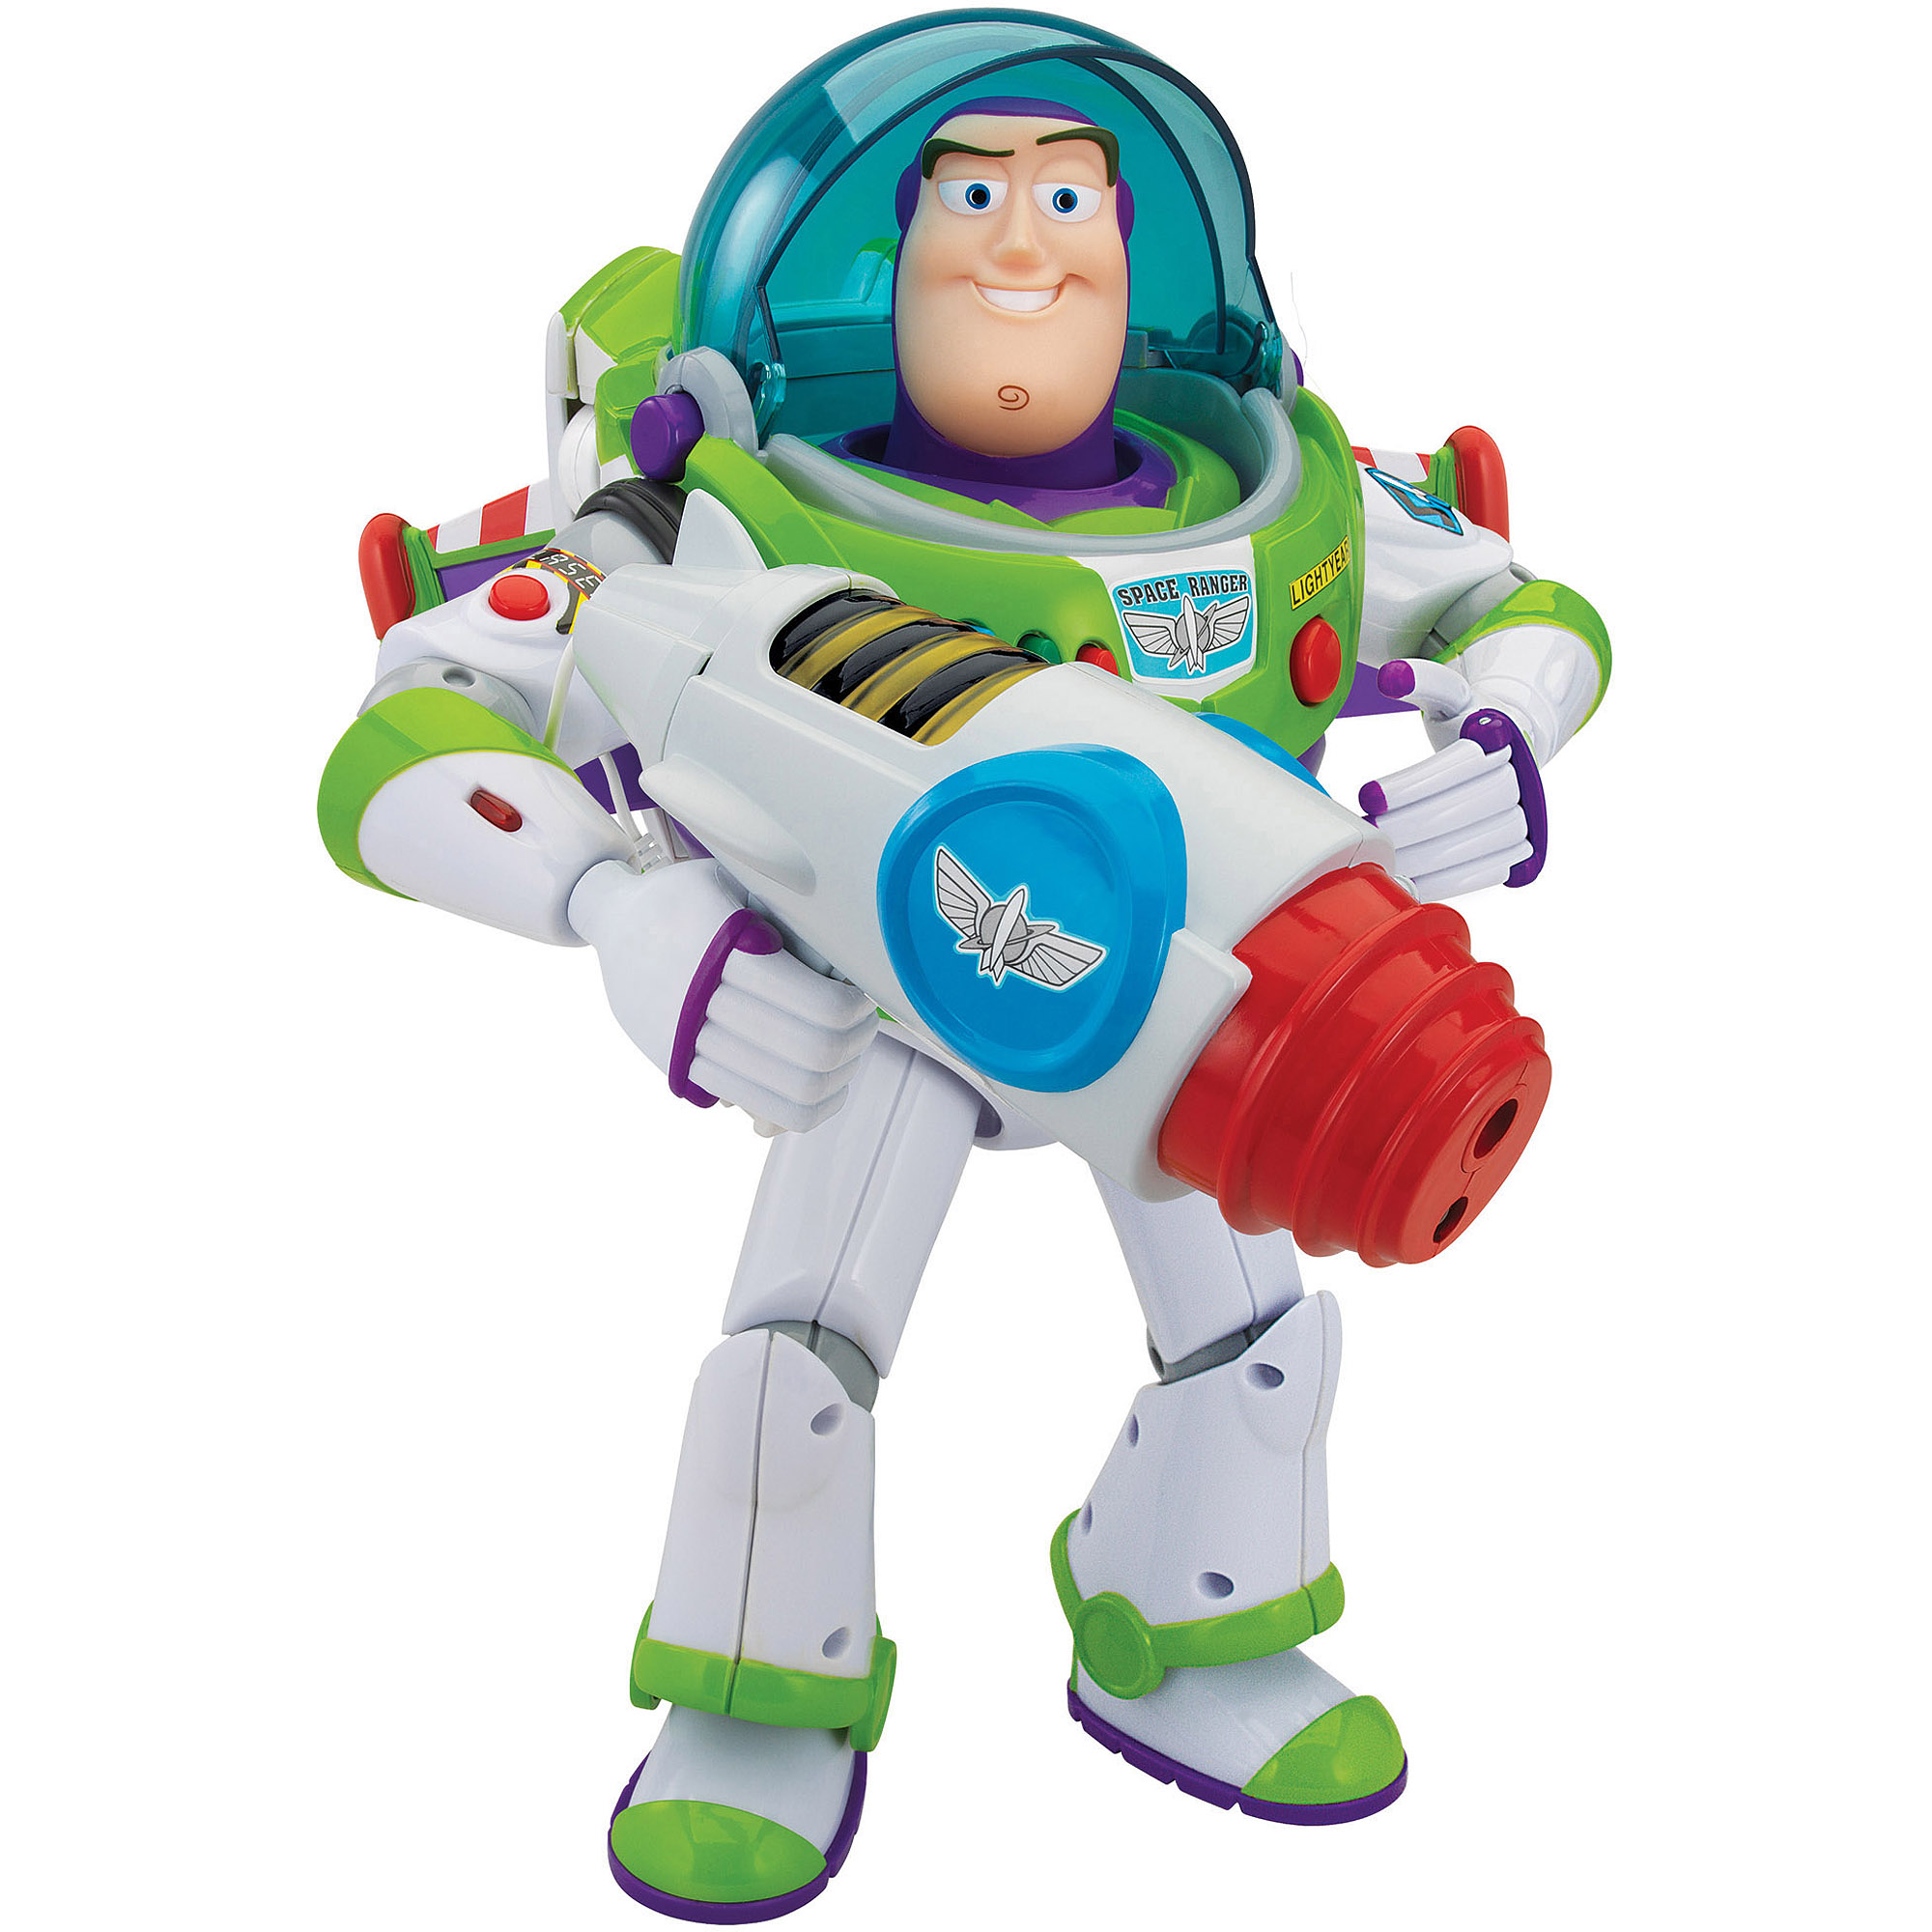 Toy Story Buzz Lightyear Power Projecto Talking Action Figure by Thinkway Toys